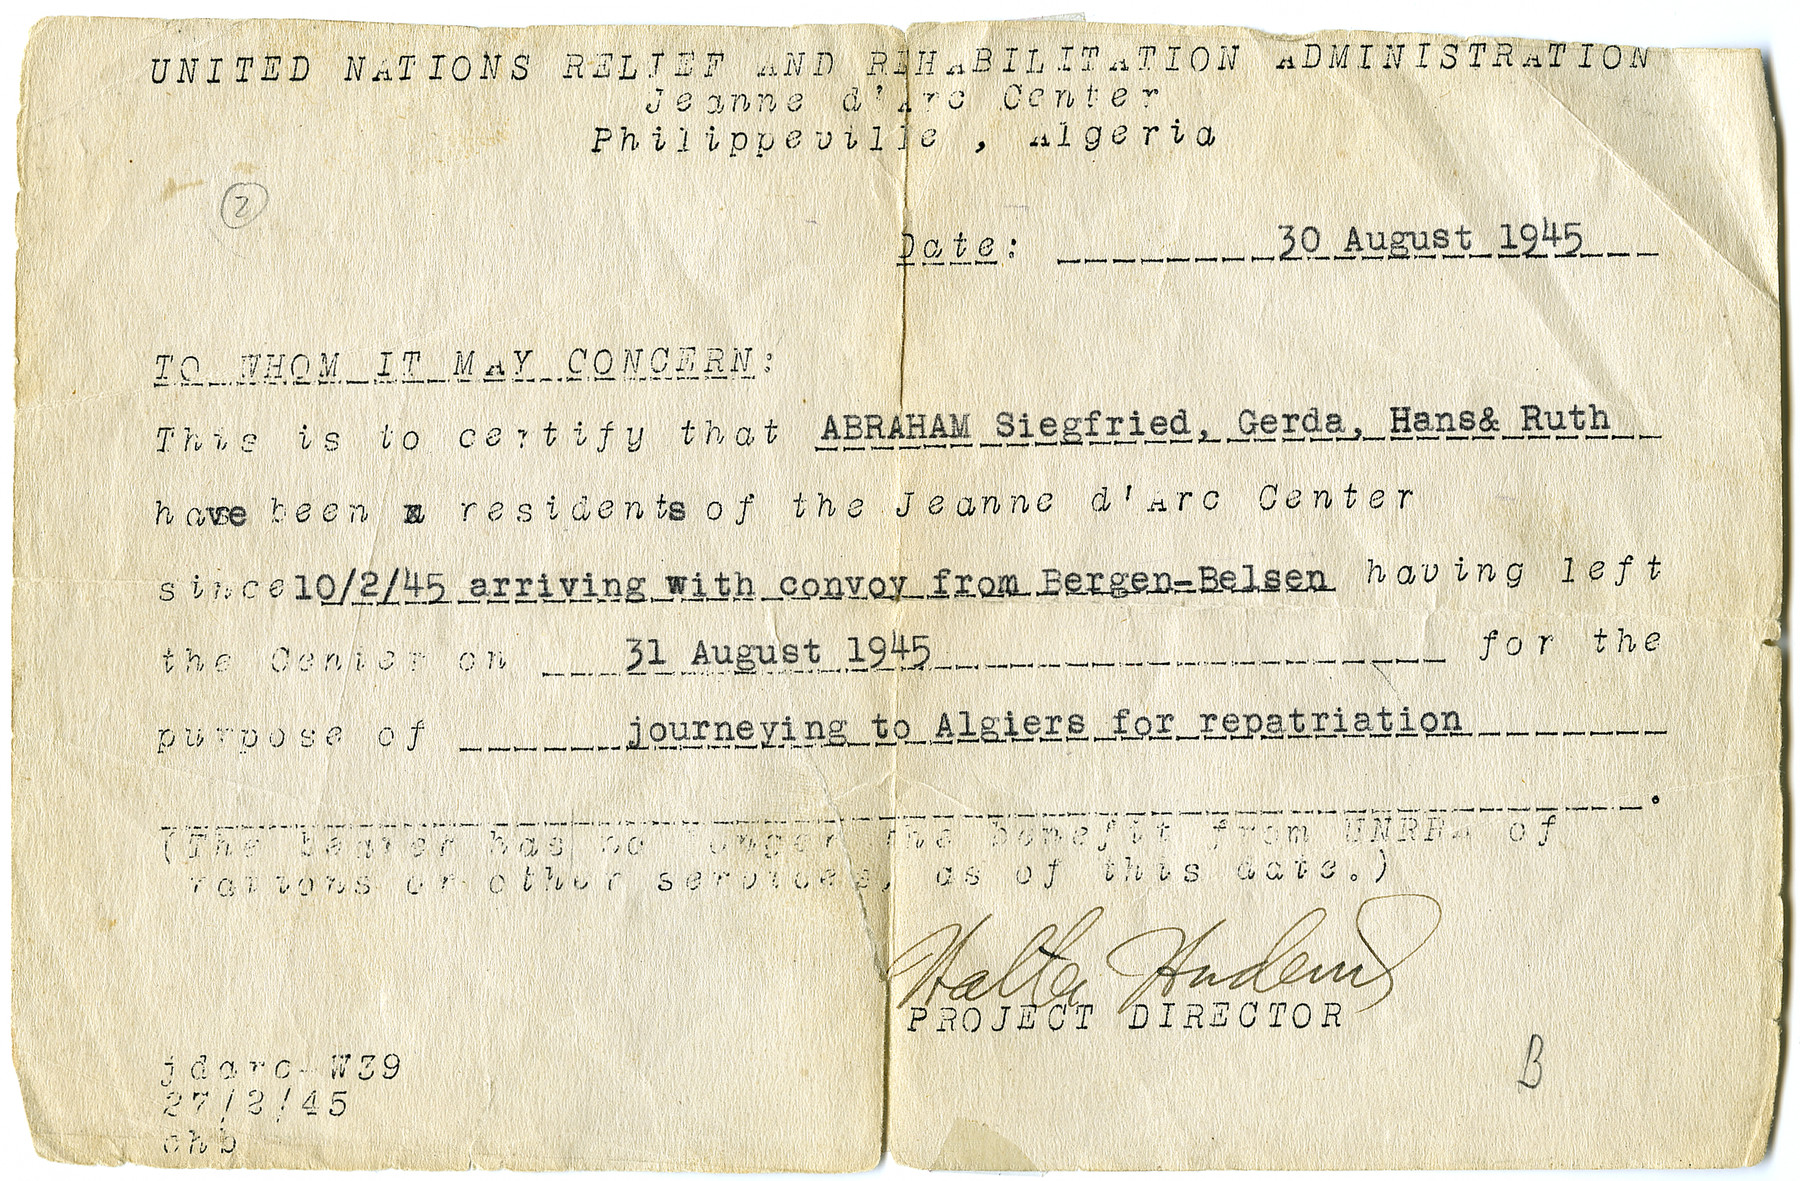 UNRRA card issued to the Abraham family stating they had arrived in the Philippeville camp following their release from Bergen-Belsen and were now journying to Algiers for repatriation.